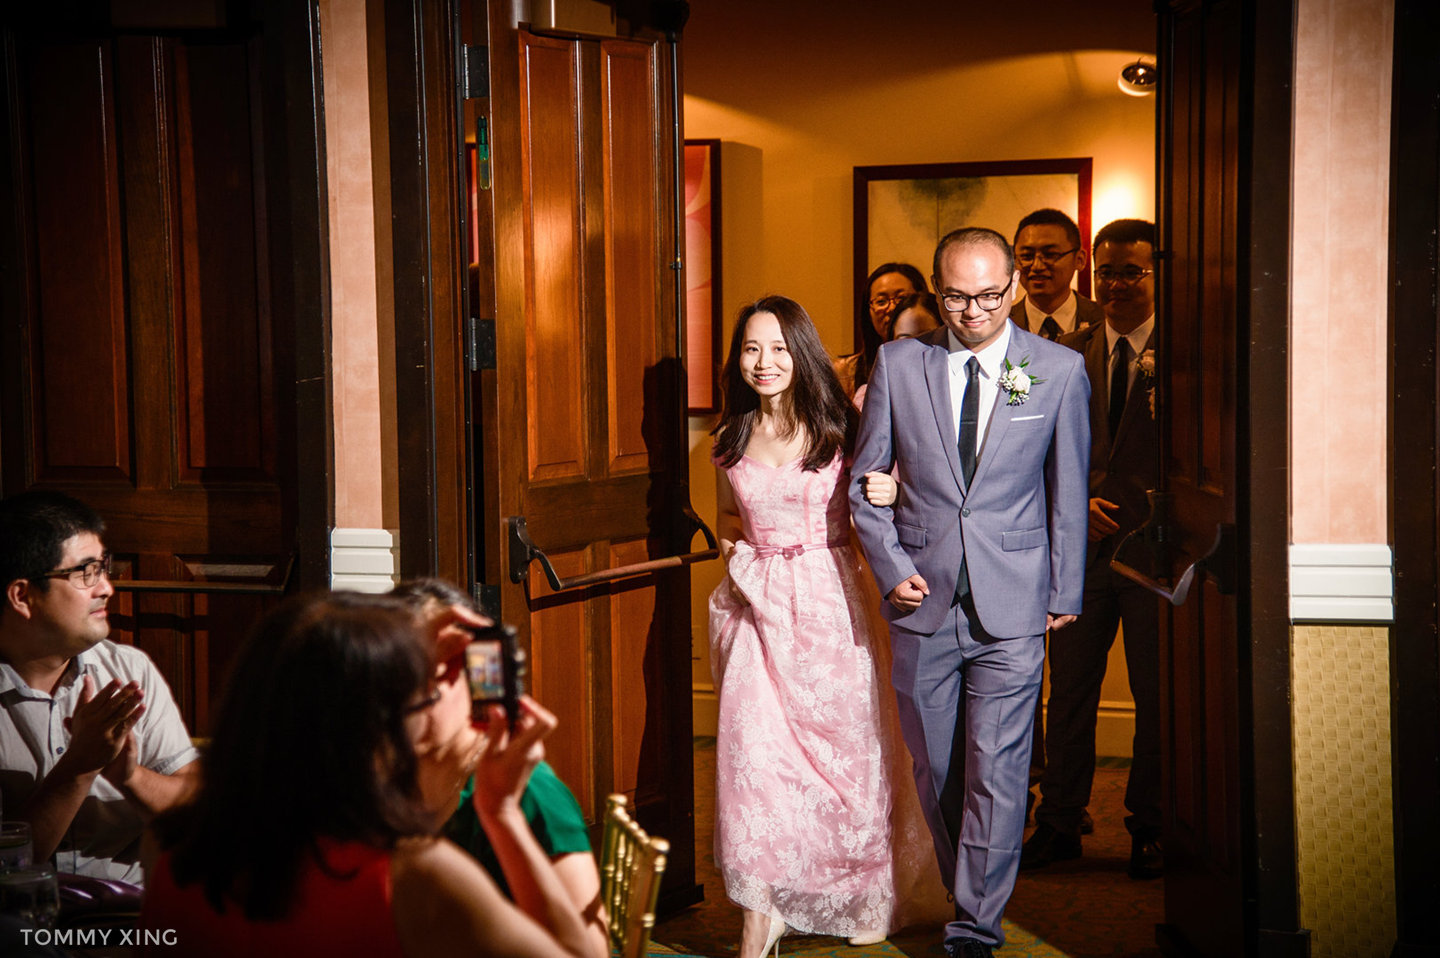 Paradise Point Resort Wedding Xiaolu & Bin San Diego 圣地亚哥婚礼摄影跟拍 Tommy Xing Photography 洛杉矶婚礼婚纱照摄影师 218.jpg